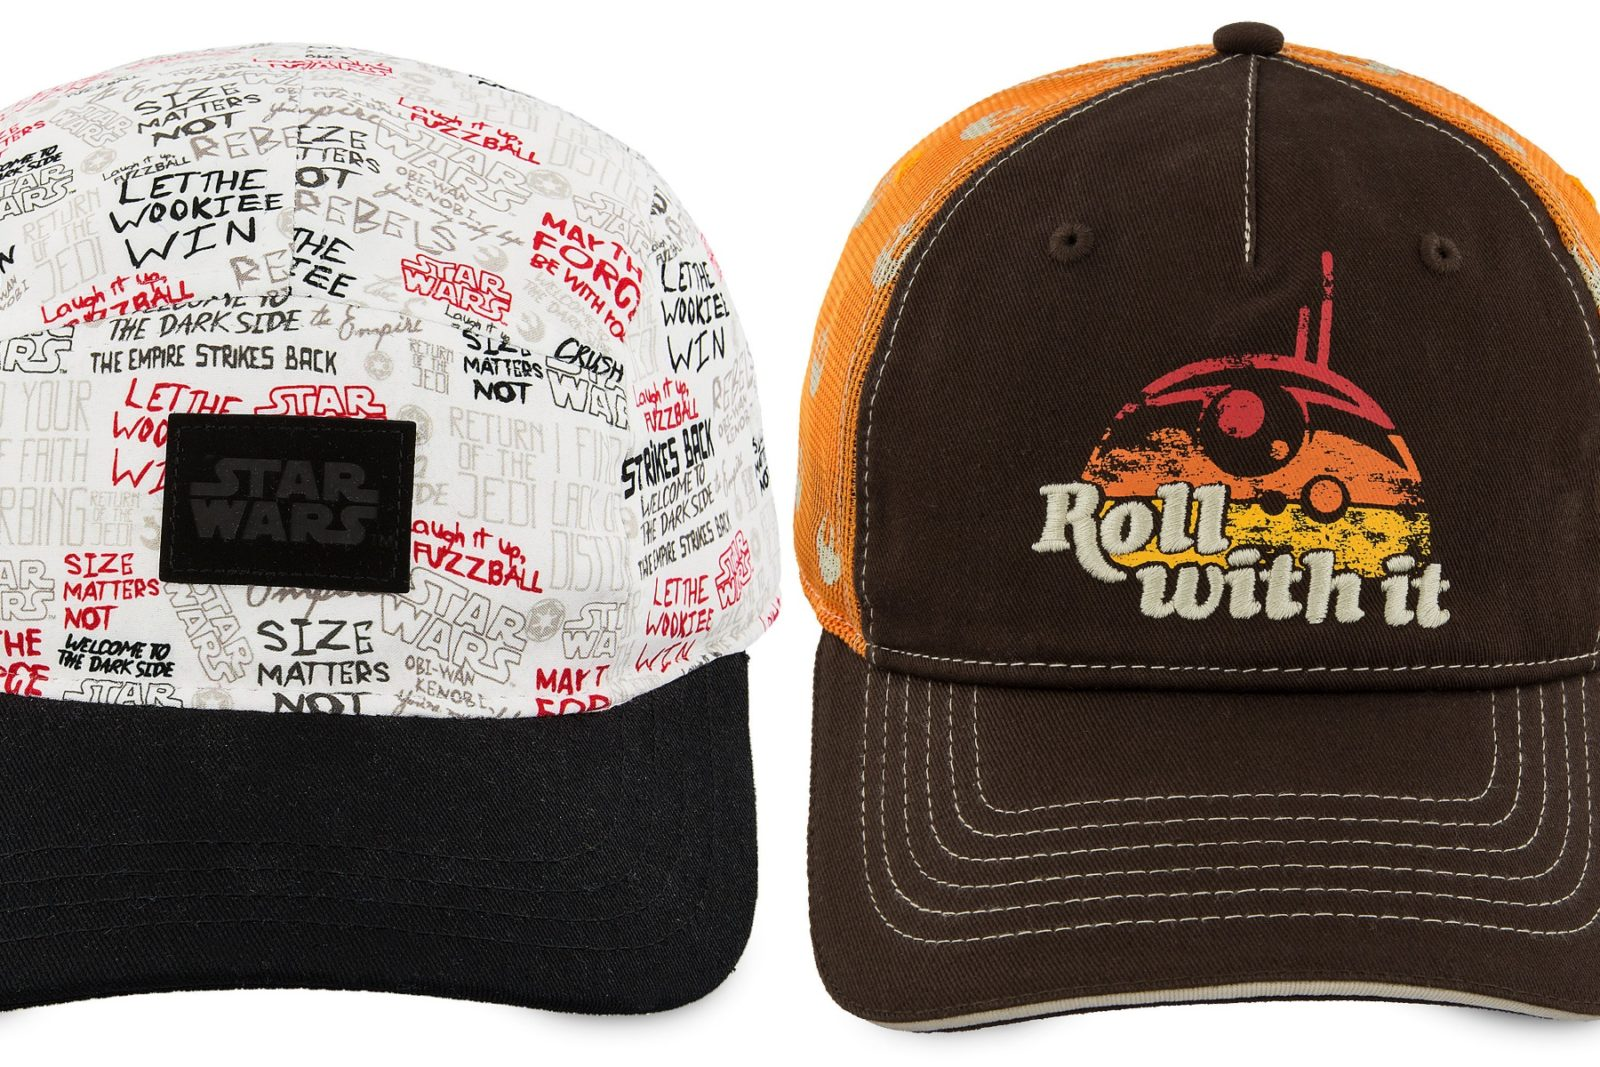 New Star Wars Caps at Shop Disney